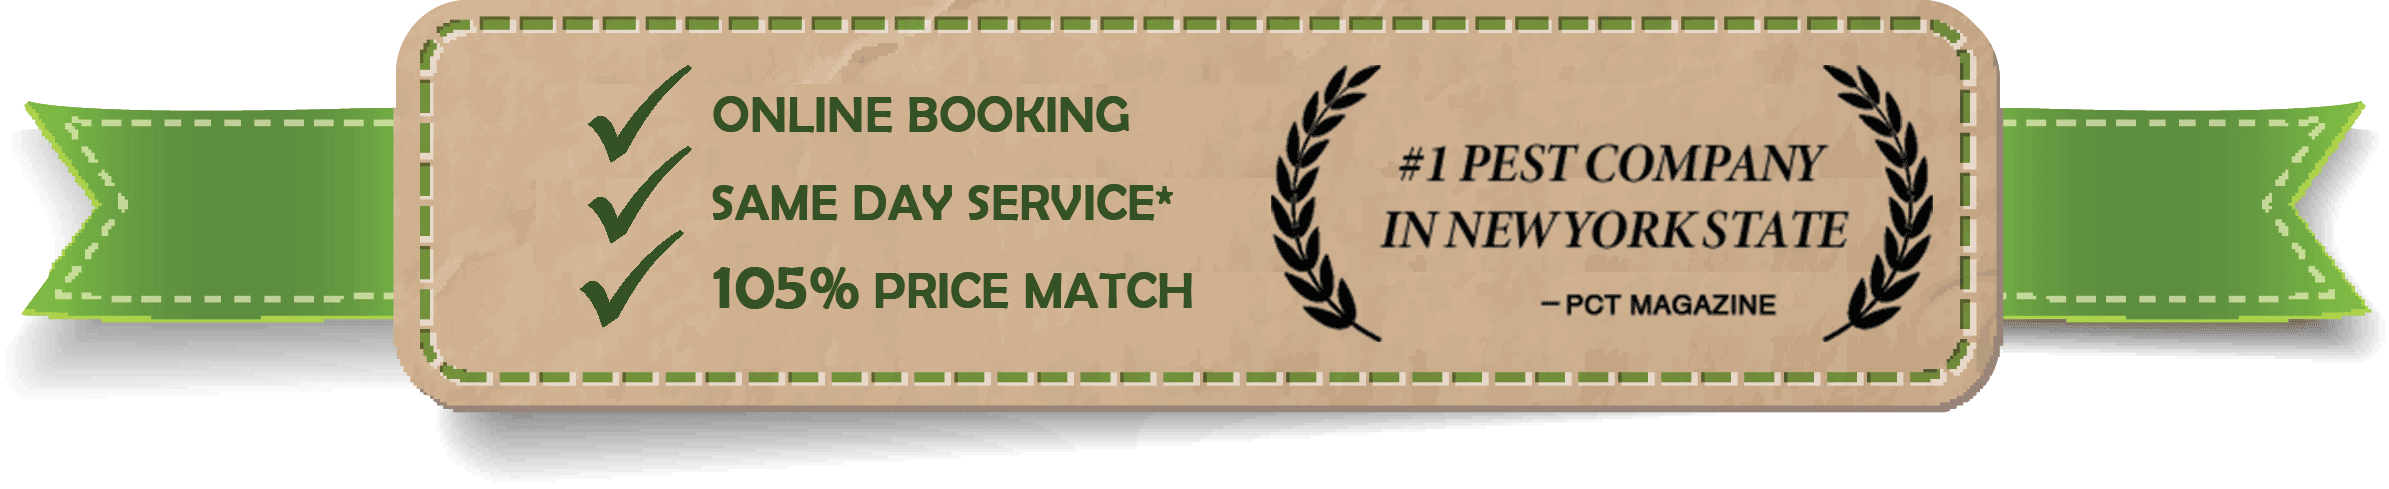 online booking, same day service, price match guarantee - #1 pest company in New York